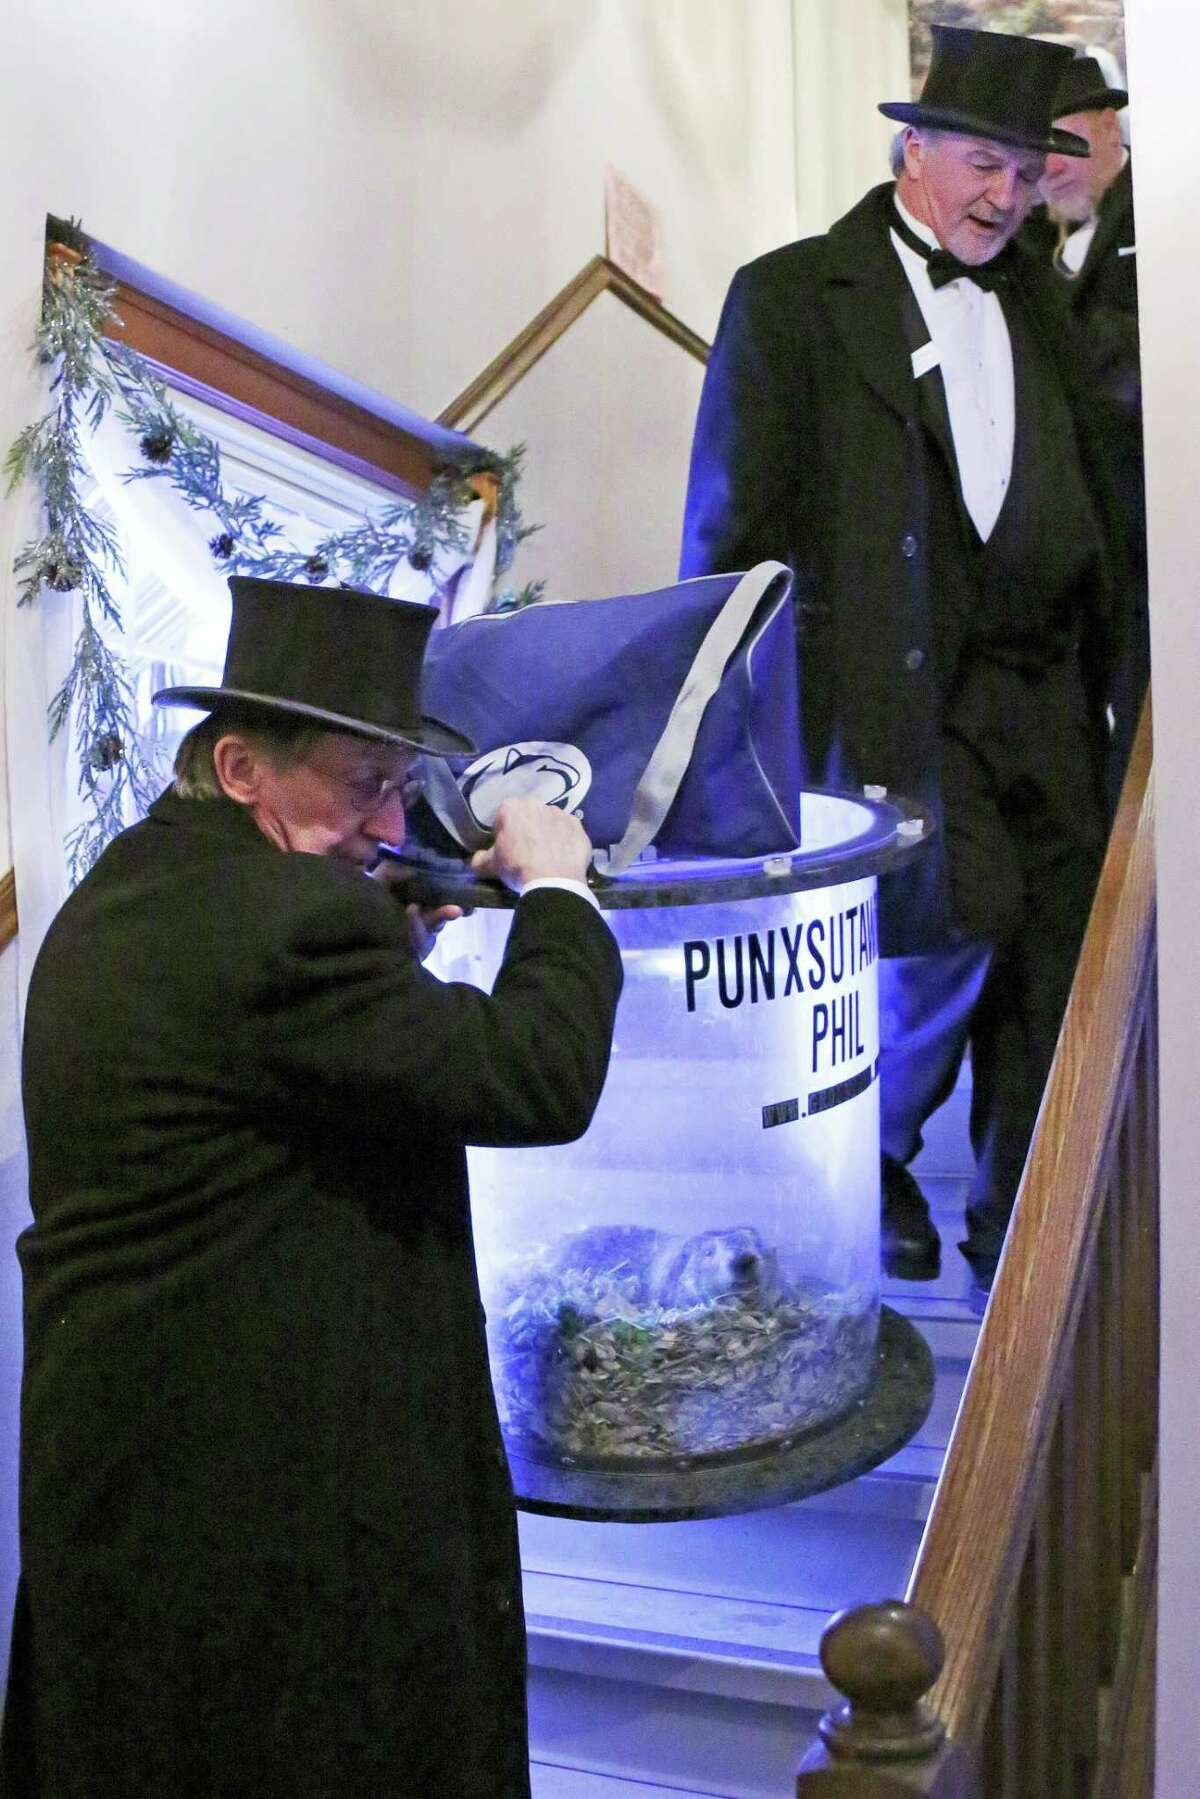 Groundhog Club handlers John Griffiths, top right and Ron Ploucha, left, carry Punxsutawney Phil, the weather prognosticating groundhog, down a flight of stairs after attending a function on Groundhog Day eve in Punxsutawney, Pa. on Feb. 1, 2017. The members of the Punxsutawney Groundhog Club's inner circle with make their trek to Gobber's Knob for the 131st time early Thursday morning.